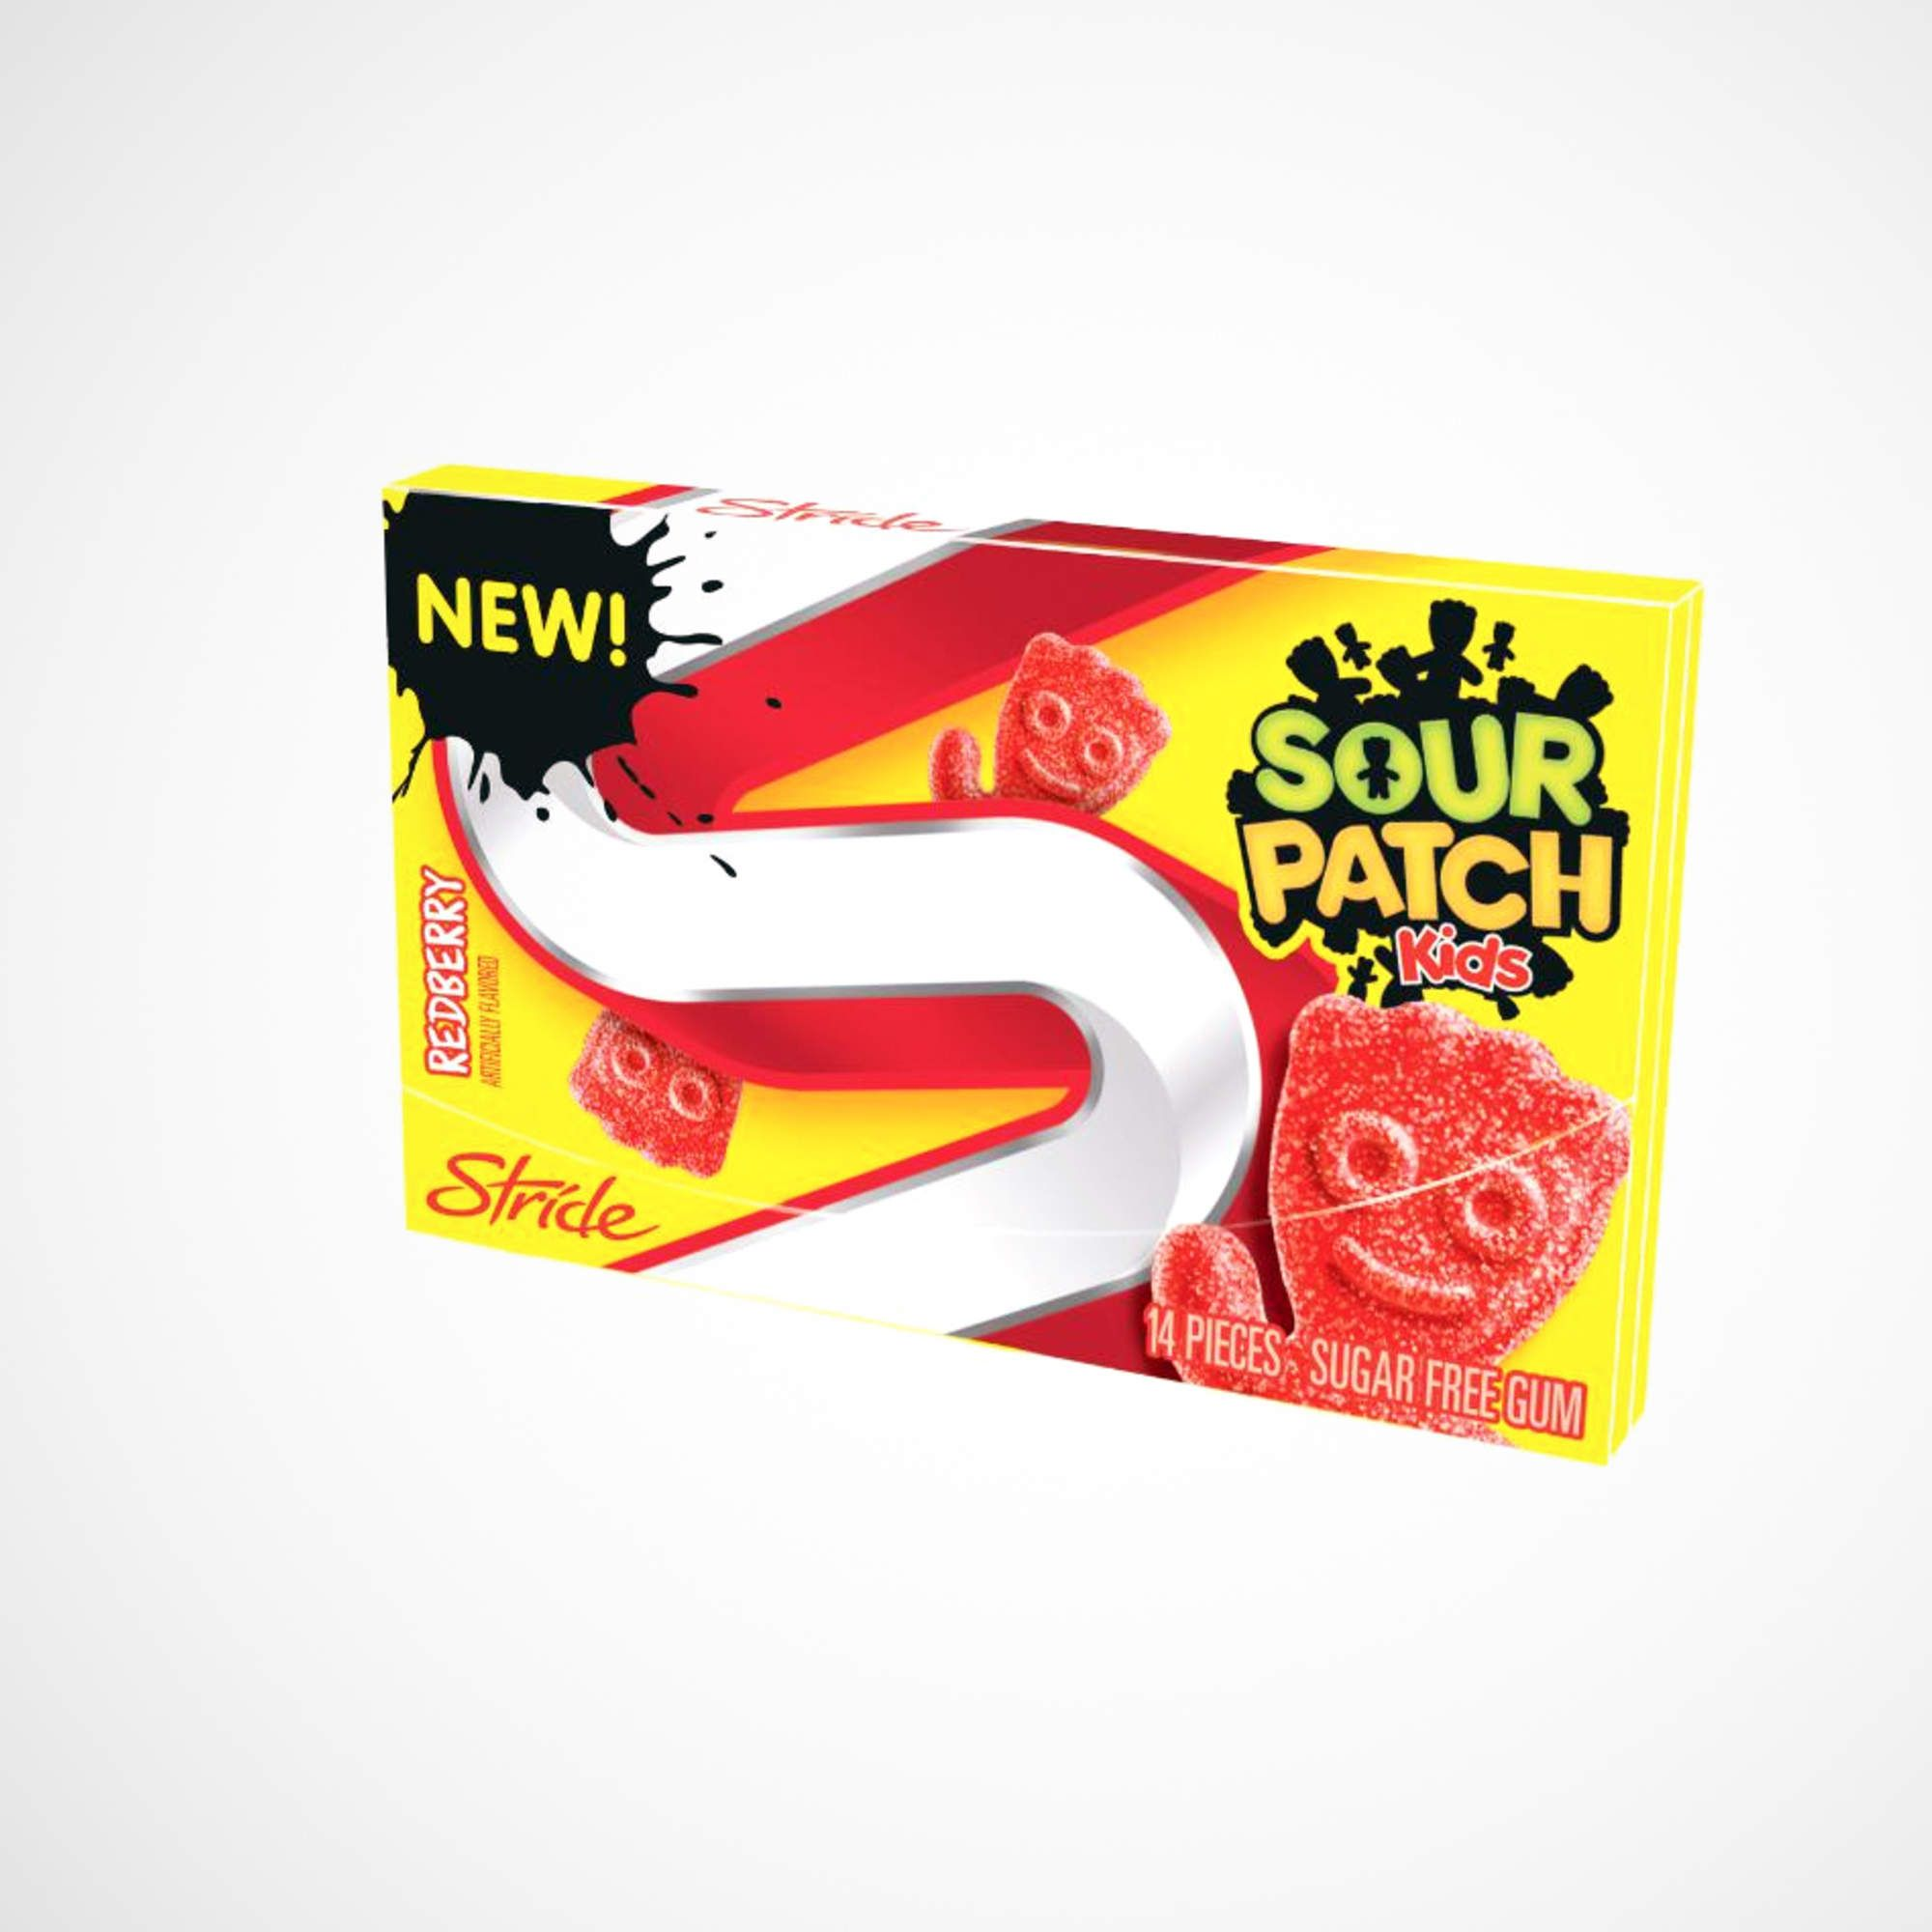 Sour Patch Kids Gum It Is Disgusting At First But After 10 Minutes It Tastes Better Sour Patch Kids Sour Patch Sugar Free Gum